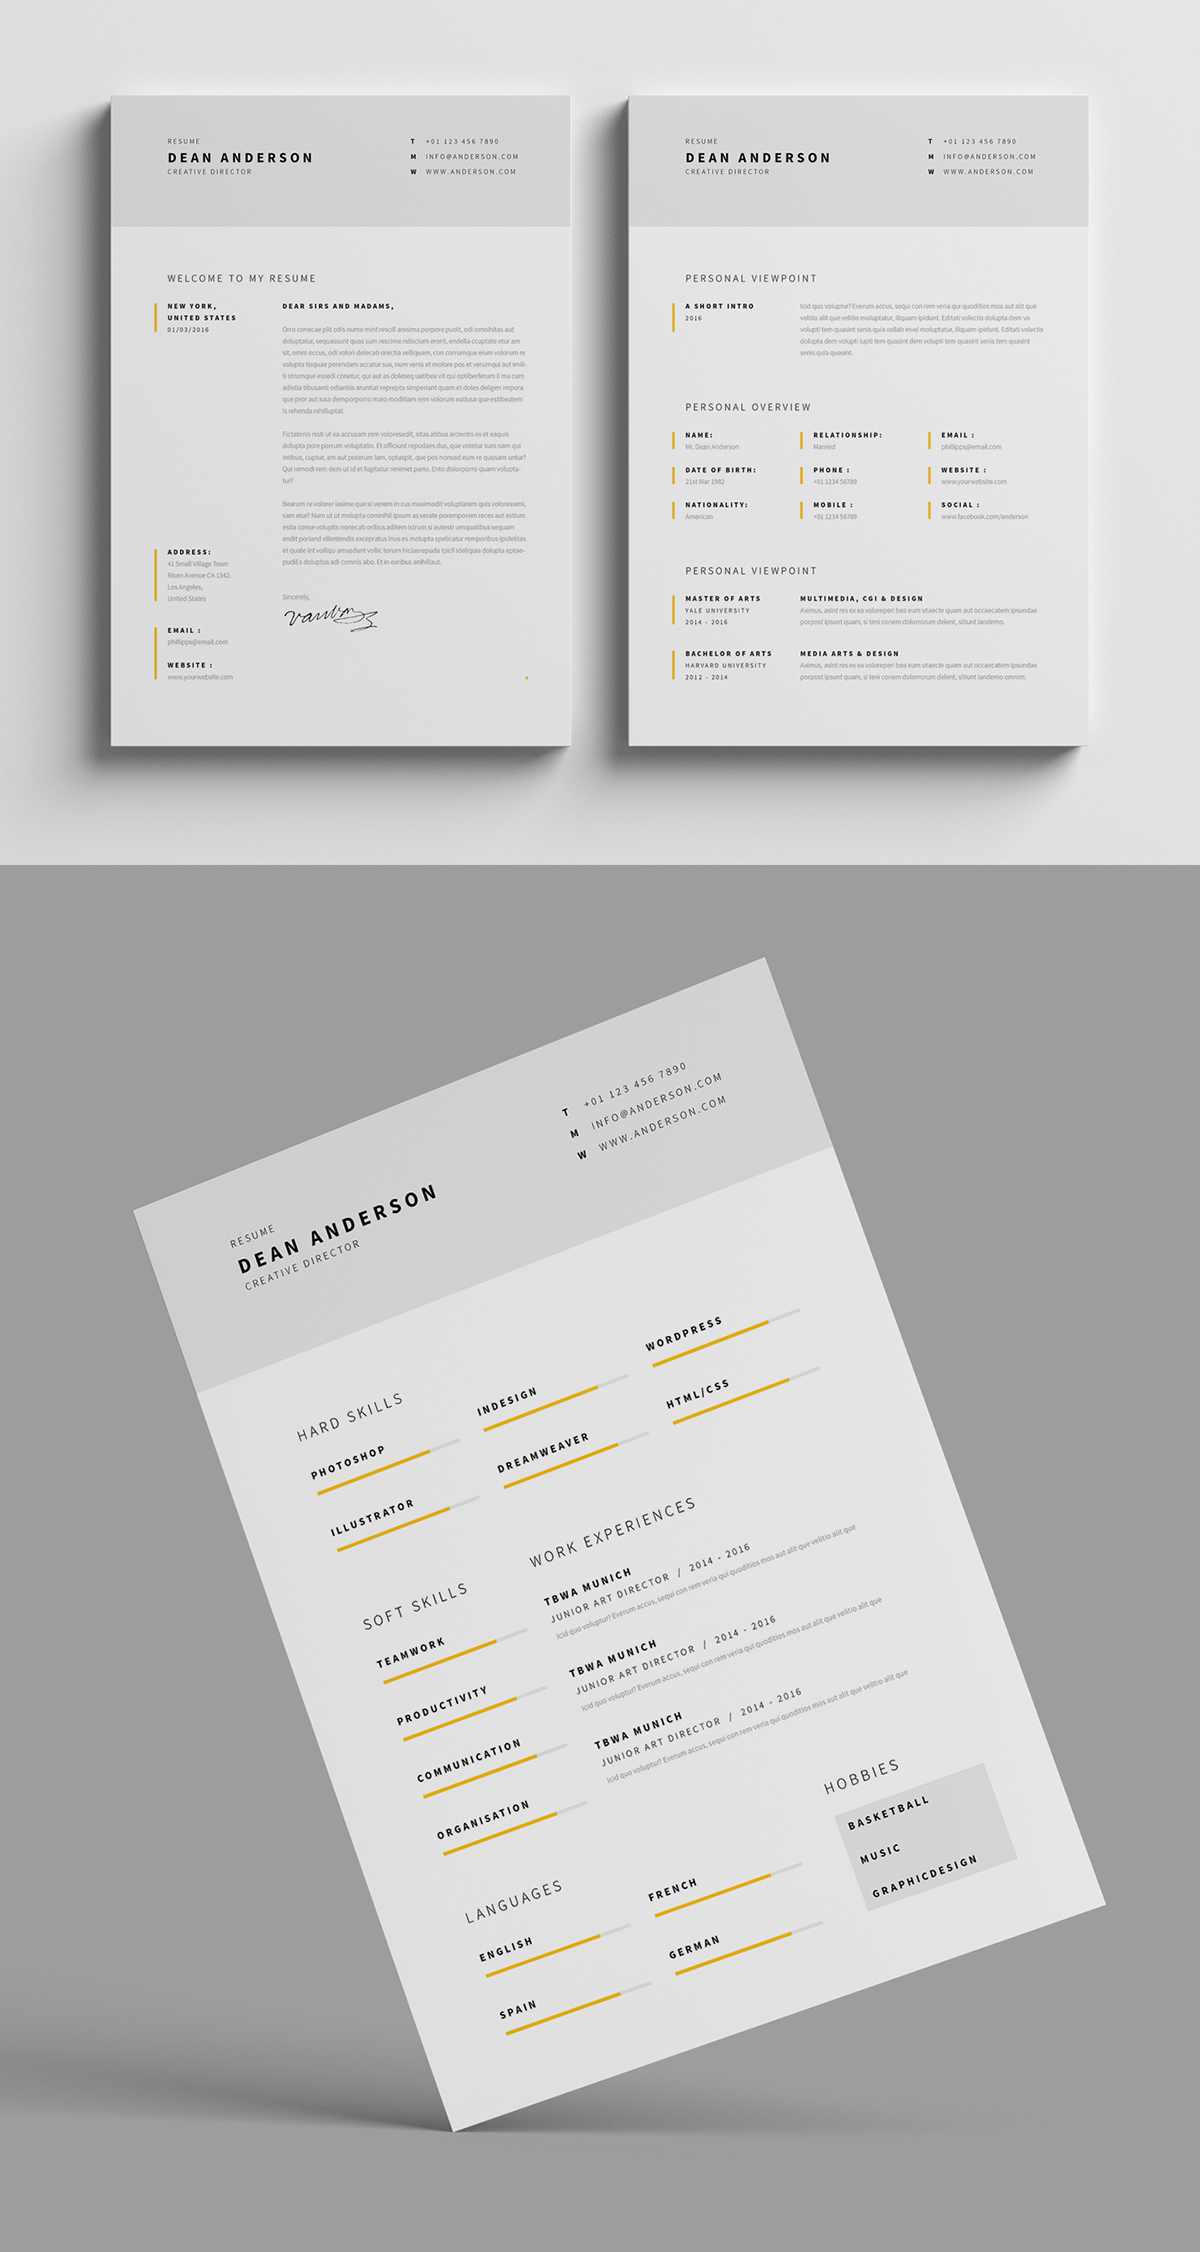 Fantastic Examples of Creative Resume Designs Who